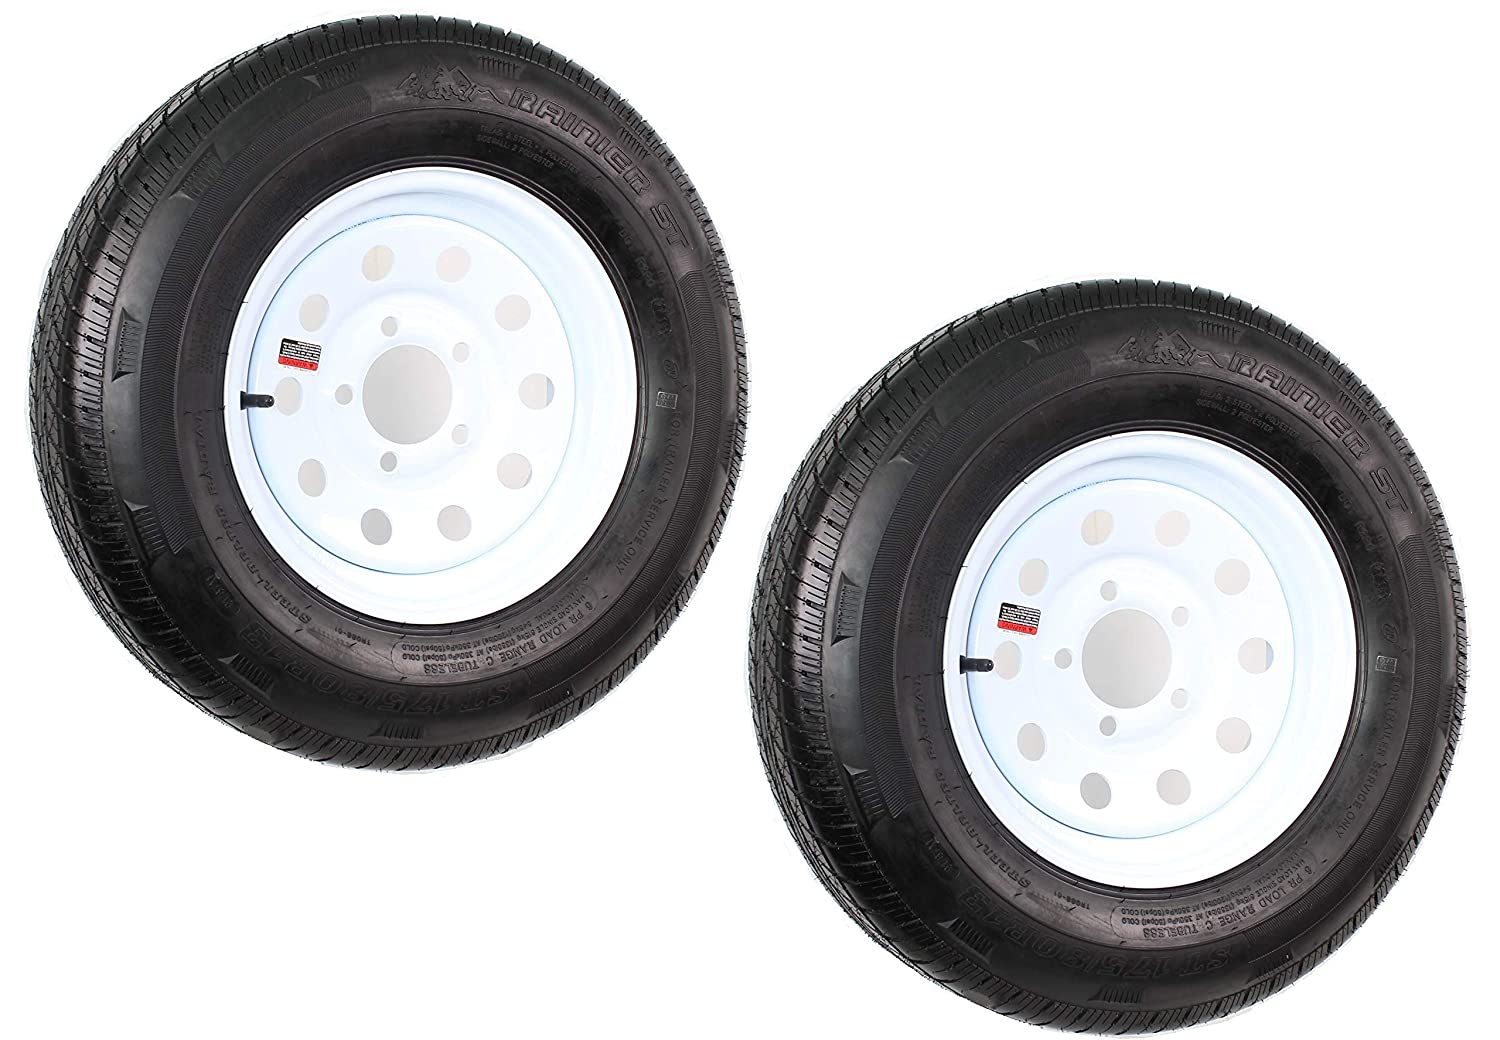 White Modular 5 on 4.5 2-Pack Radial Trailer Tire On Rim ST175//80R13C 13X4.5